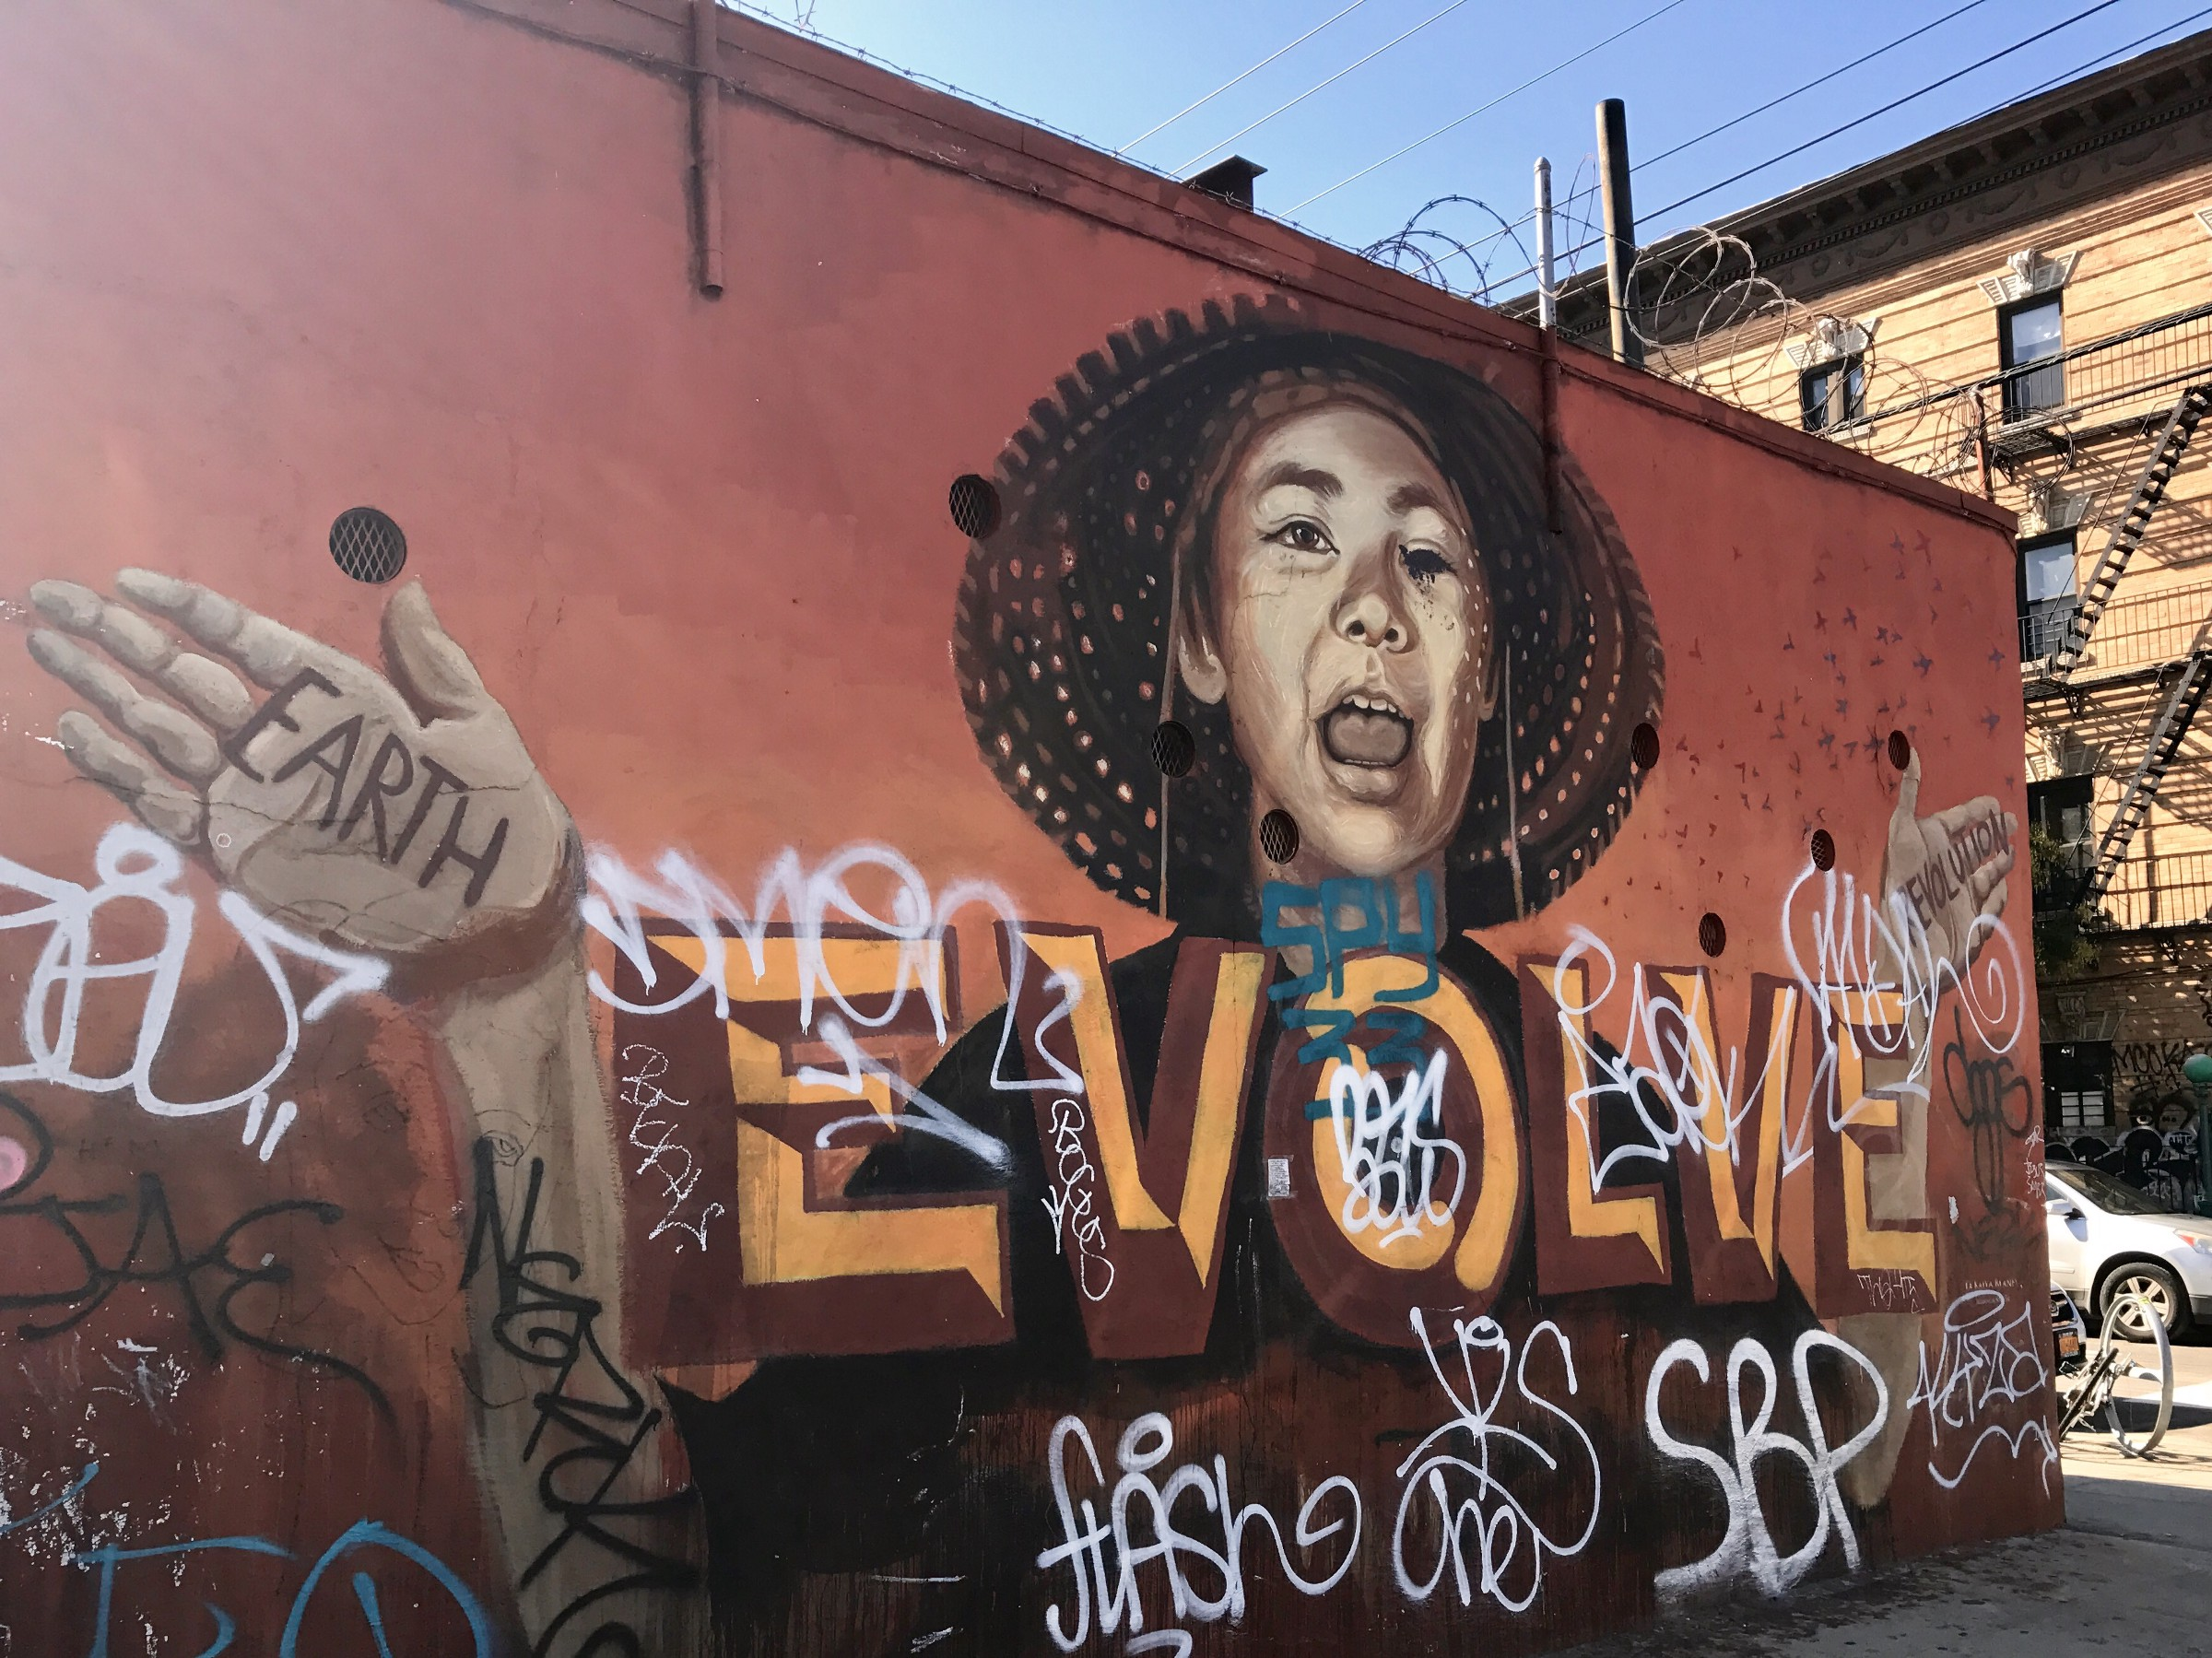 The mural by lmnopi that zexor defaced it now carries her word evolve people other than zexor are still vandalizing it today photo by natasha rodriguez